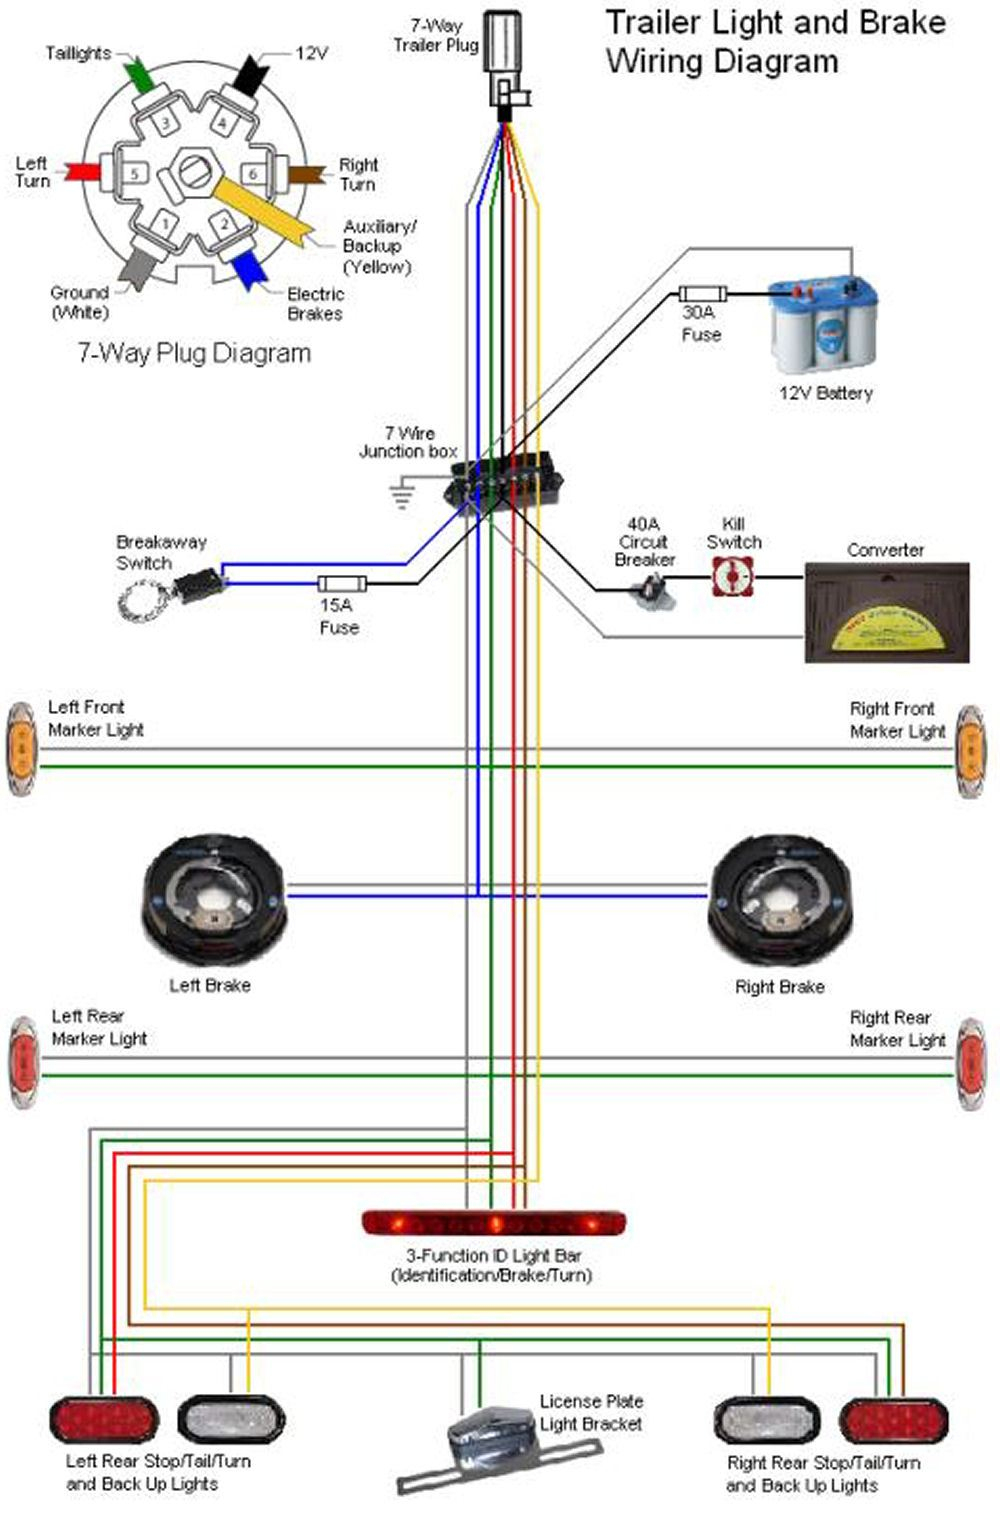 7 Pin Trailer Light Wiring Diagram With Brakes | Wiring Diagram - Wiring Diagram For Trailer Plug With Electric Brakes